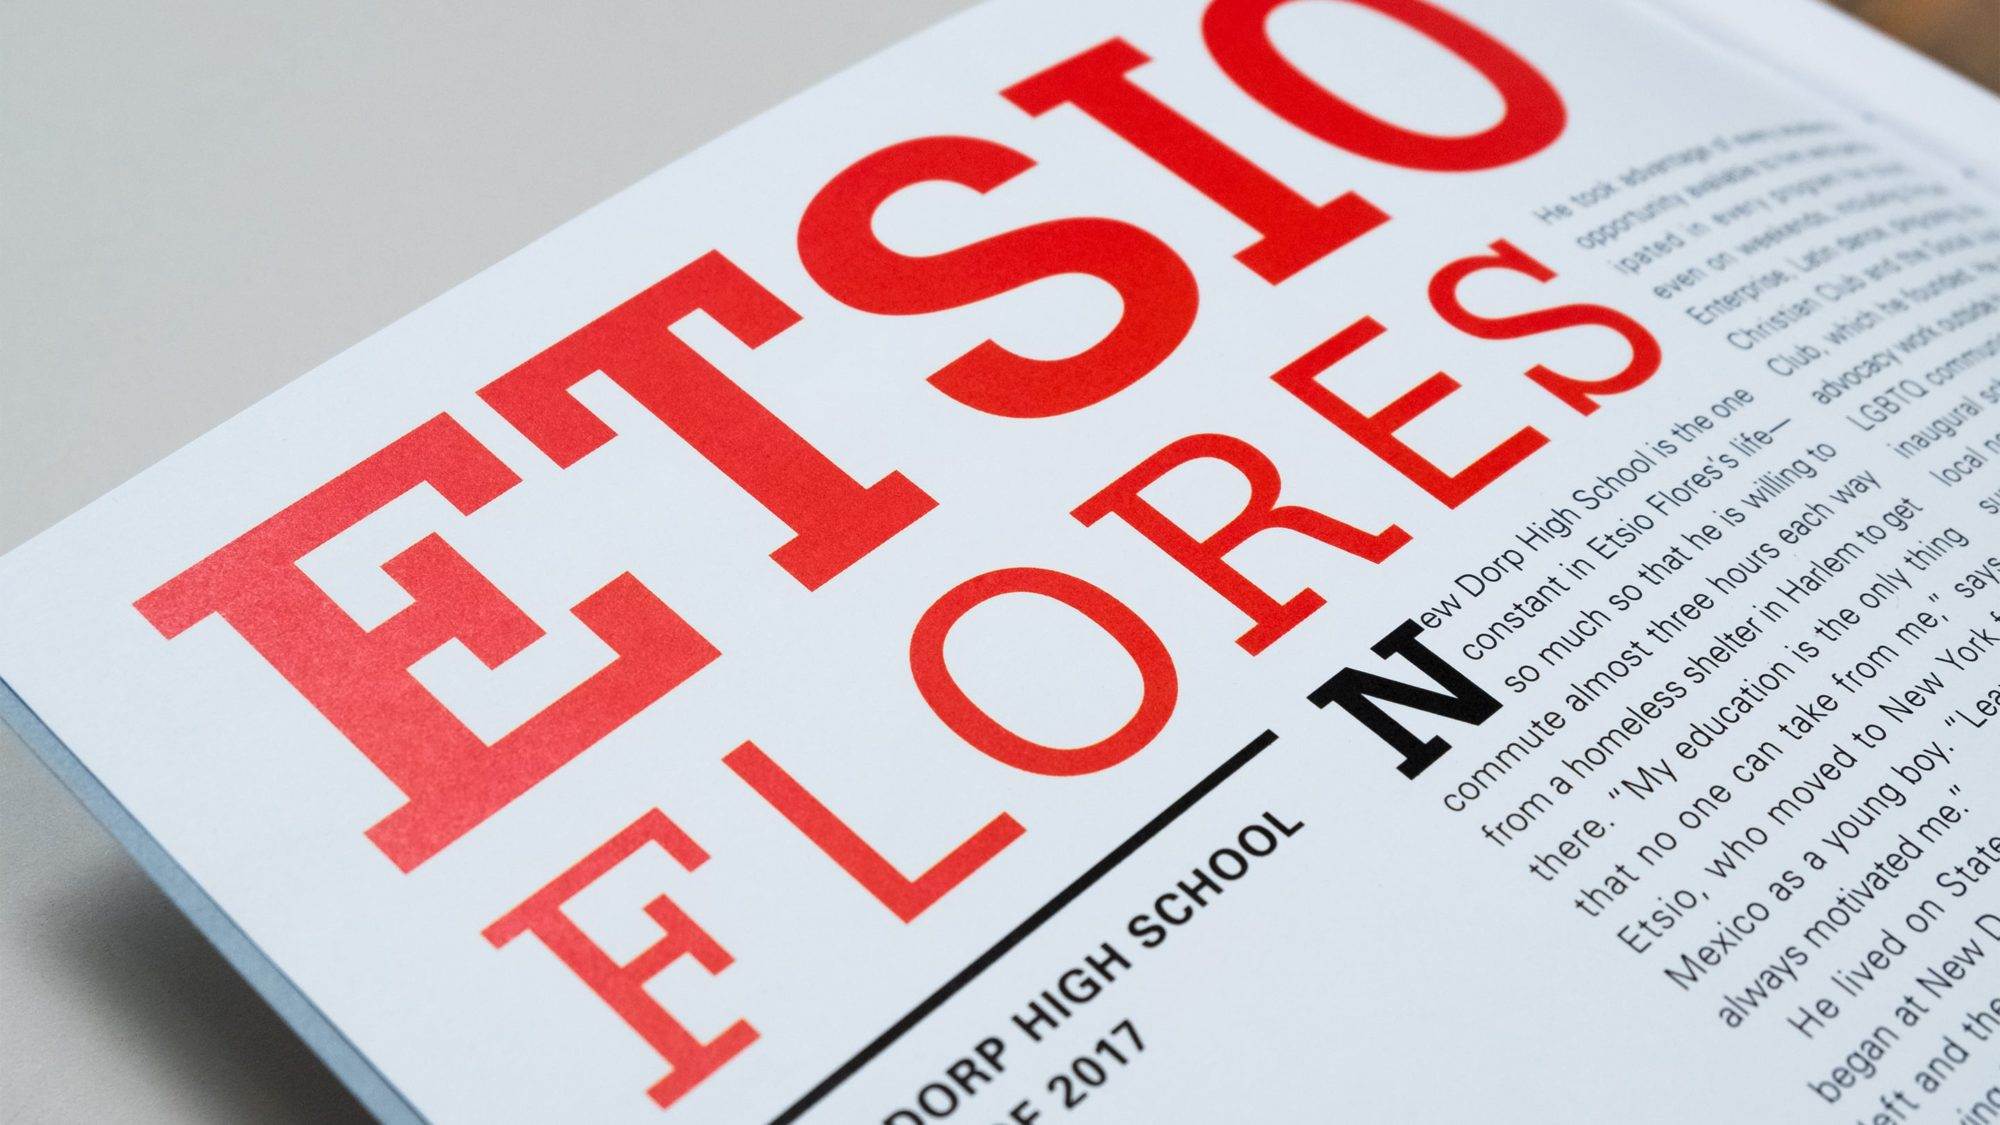 Detail of type treatment for Etsio Flores' student page